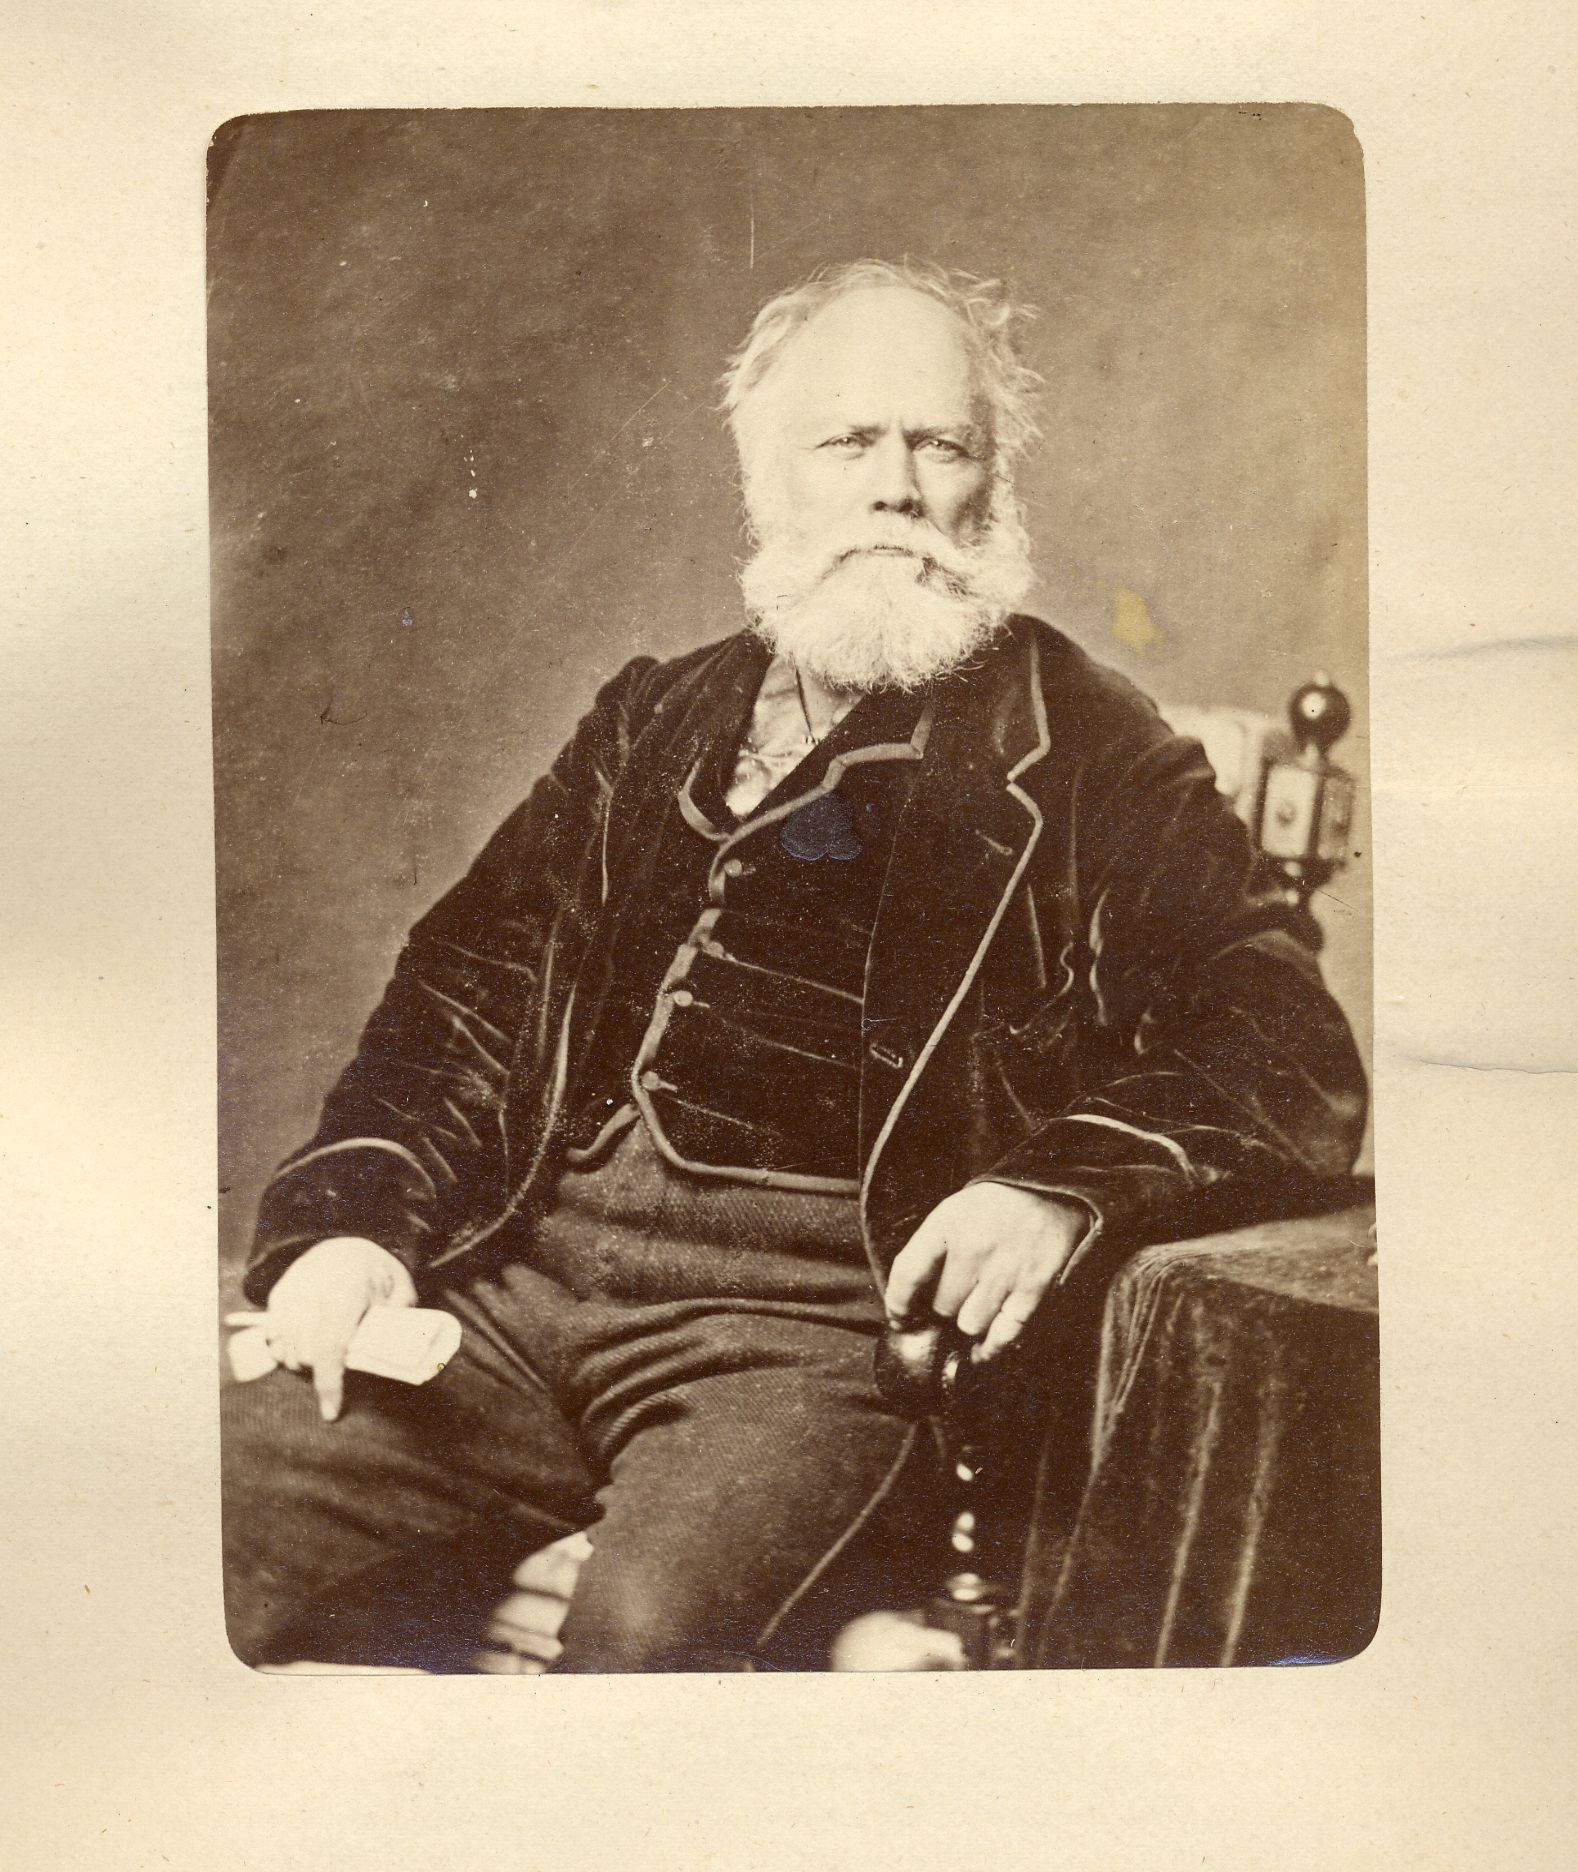 Sepia-tone photograph of a man aged about sixty, seated in a chair. His hair is white and he is slightly balding, with a thick, white, medium-length beard. He wears a dark velvet waistcoat and jacket, with trousers in a lighter material. His left arm rests on a table covered in a velvet tablecloth.